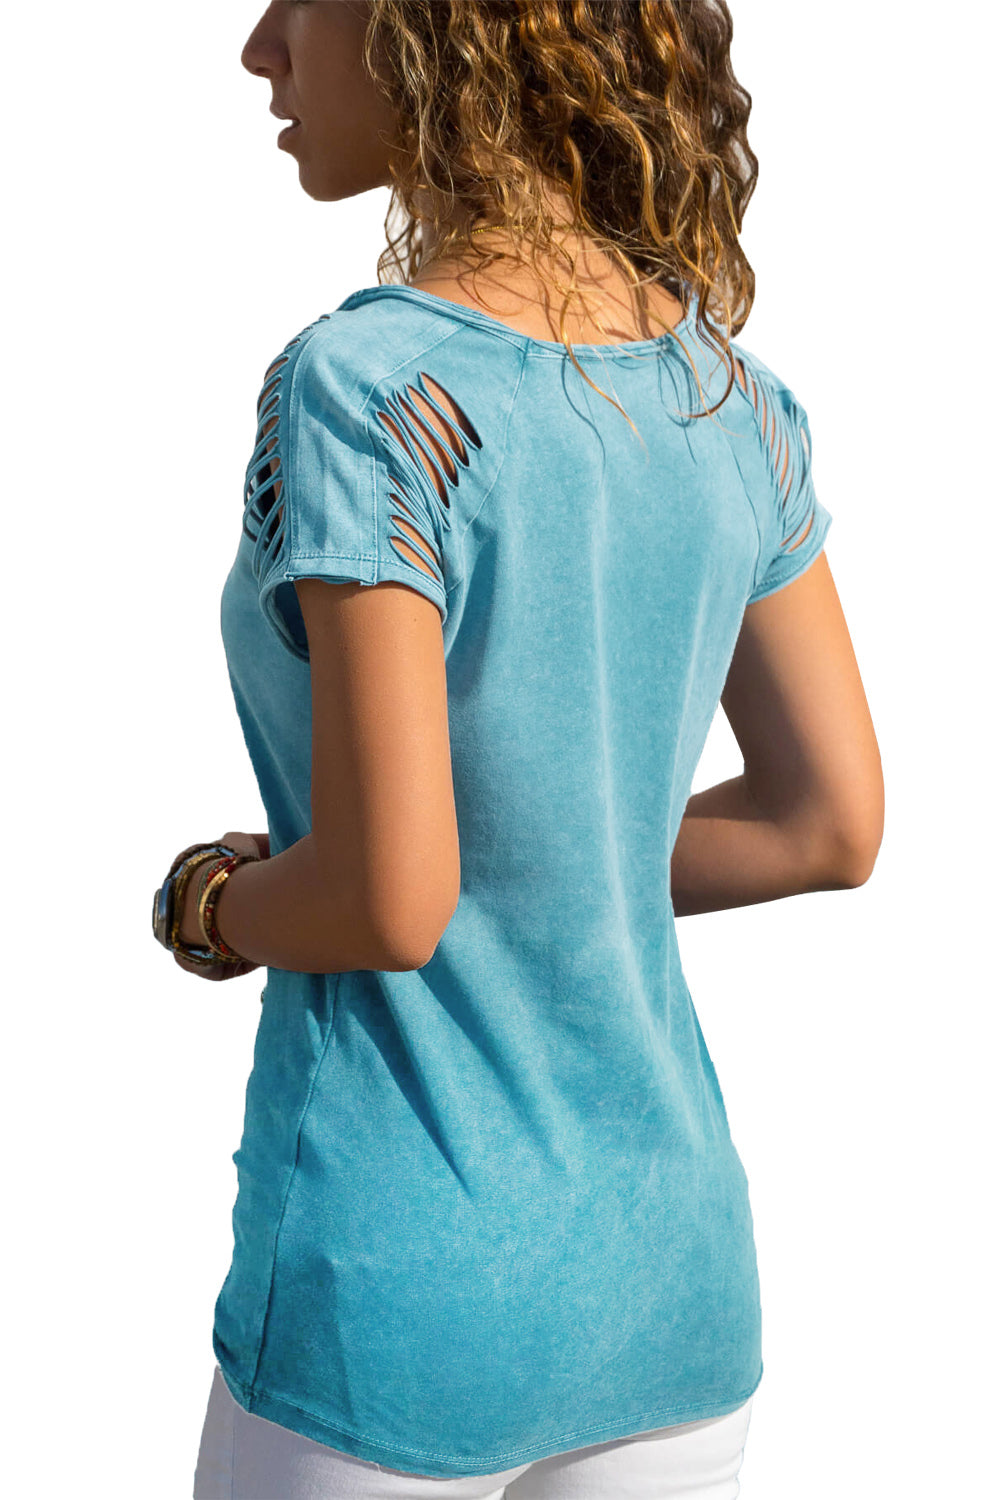 Blue Ripped Hollow Out Shoulder Tie Dye T-Shirt Top